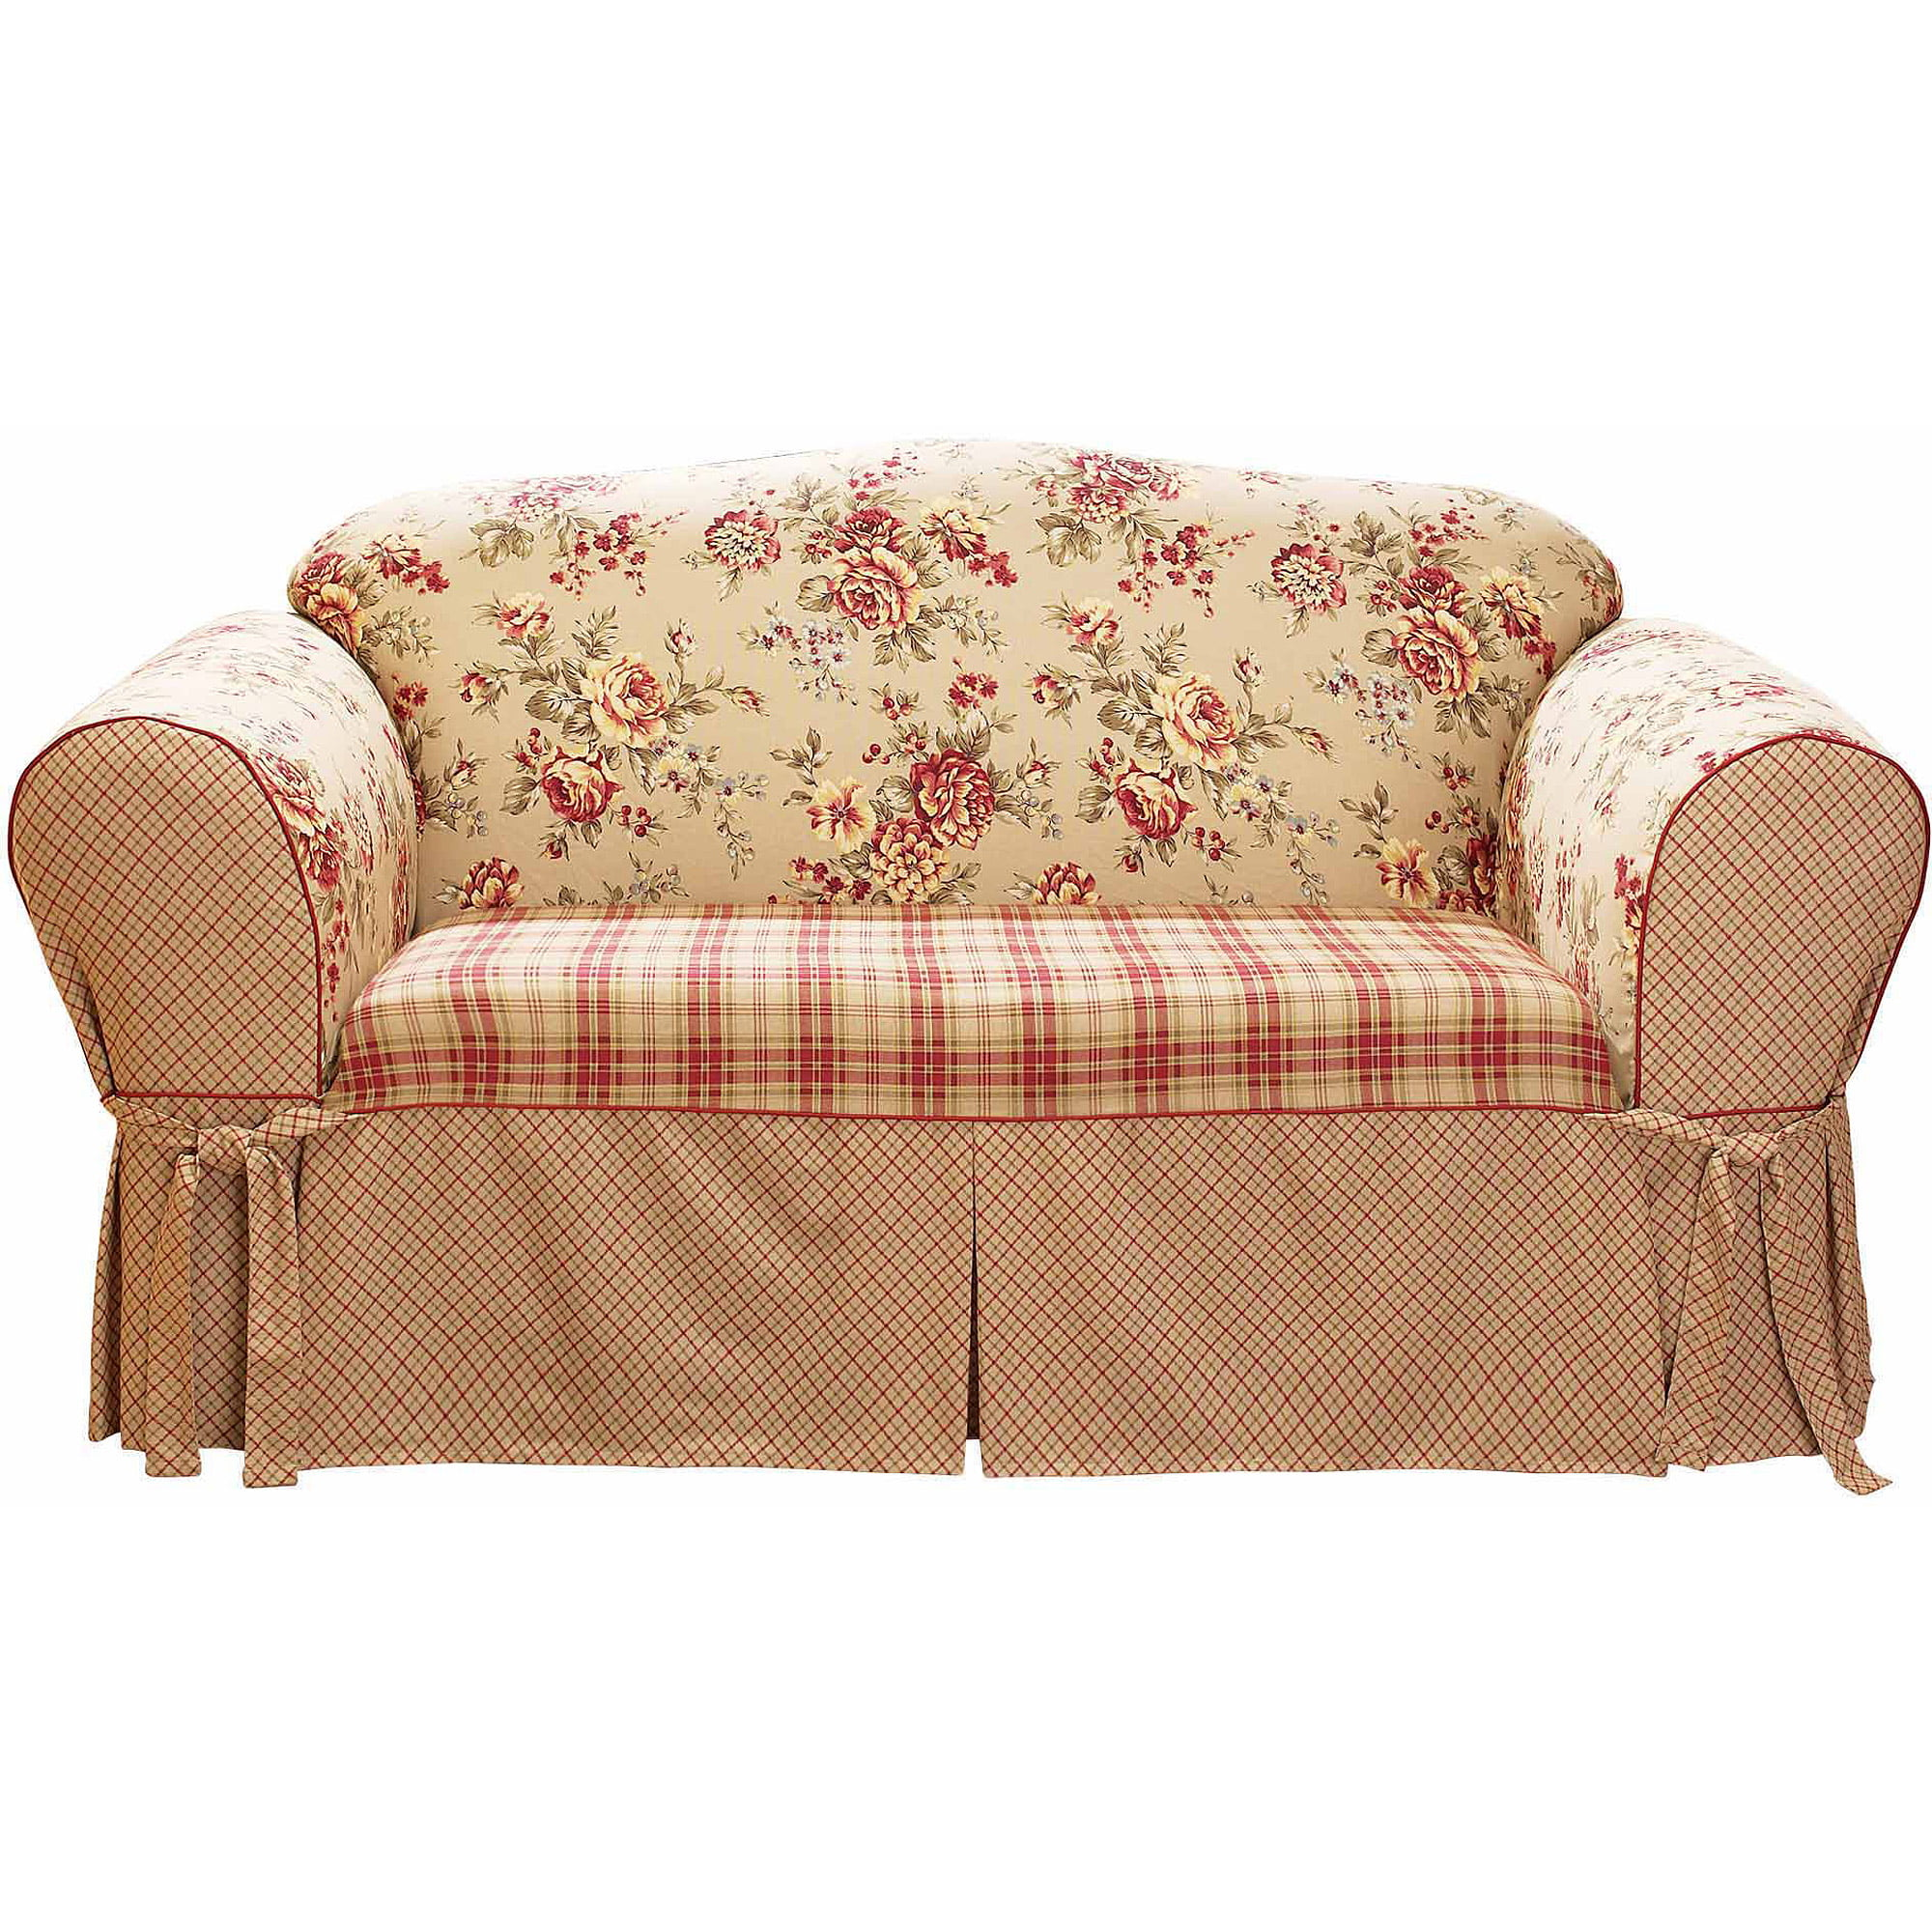 Sure Fit Lexington Sofa Slipcover, Multi-Color by Sure Fit